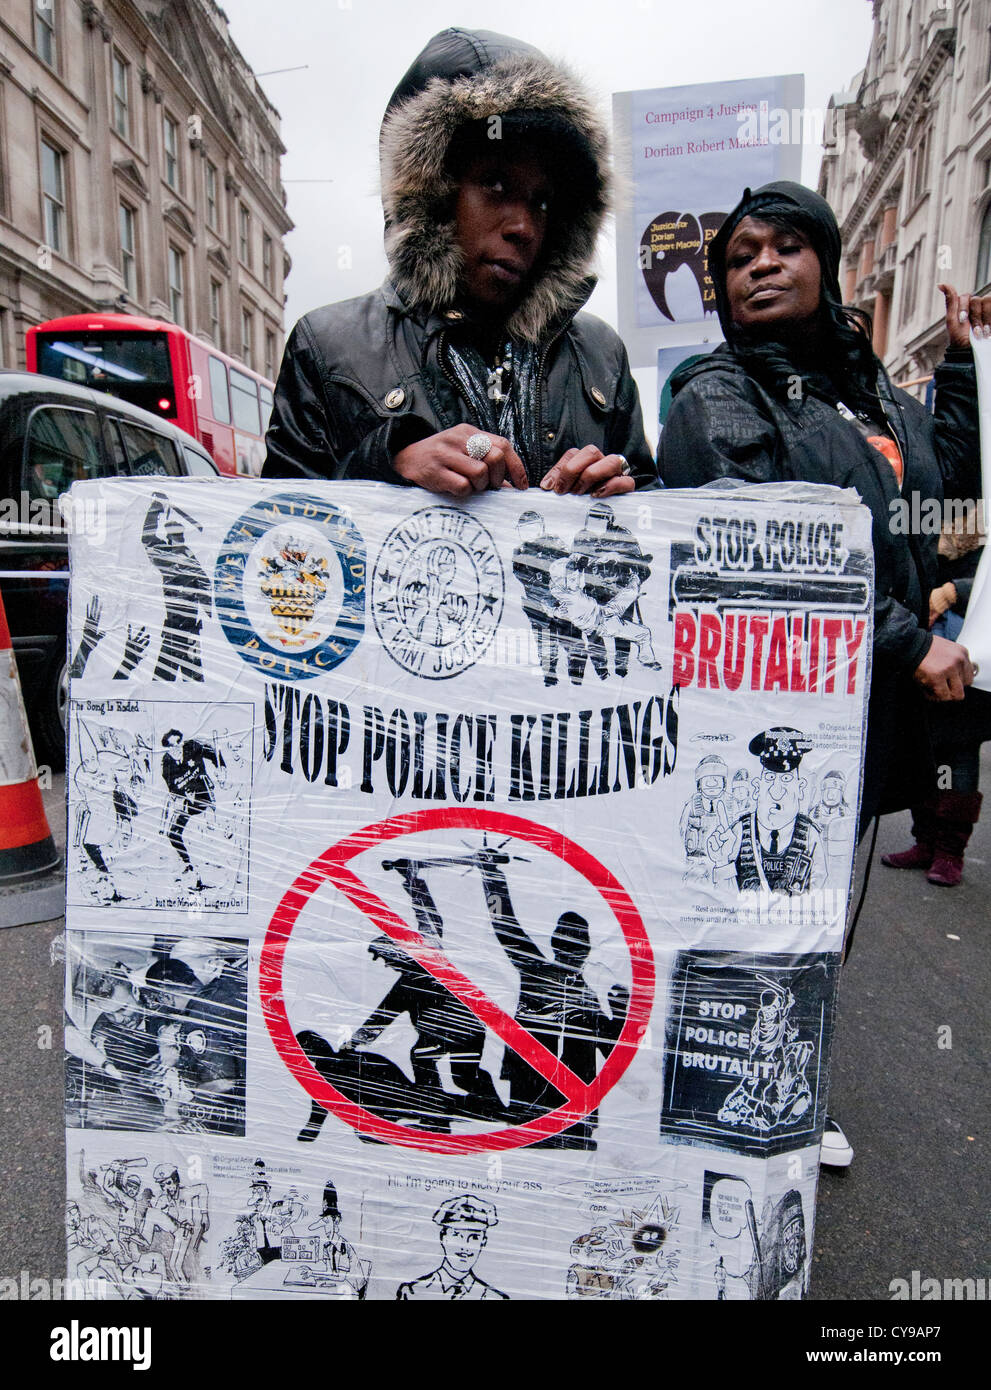 14th Annual  Friends & Family Campaign protest against death in police custody 2012 London - Stock Image